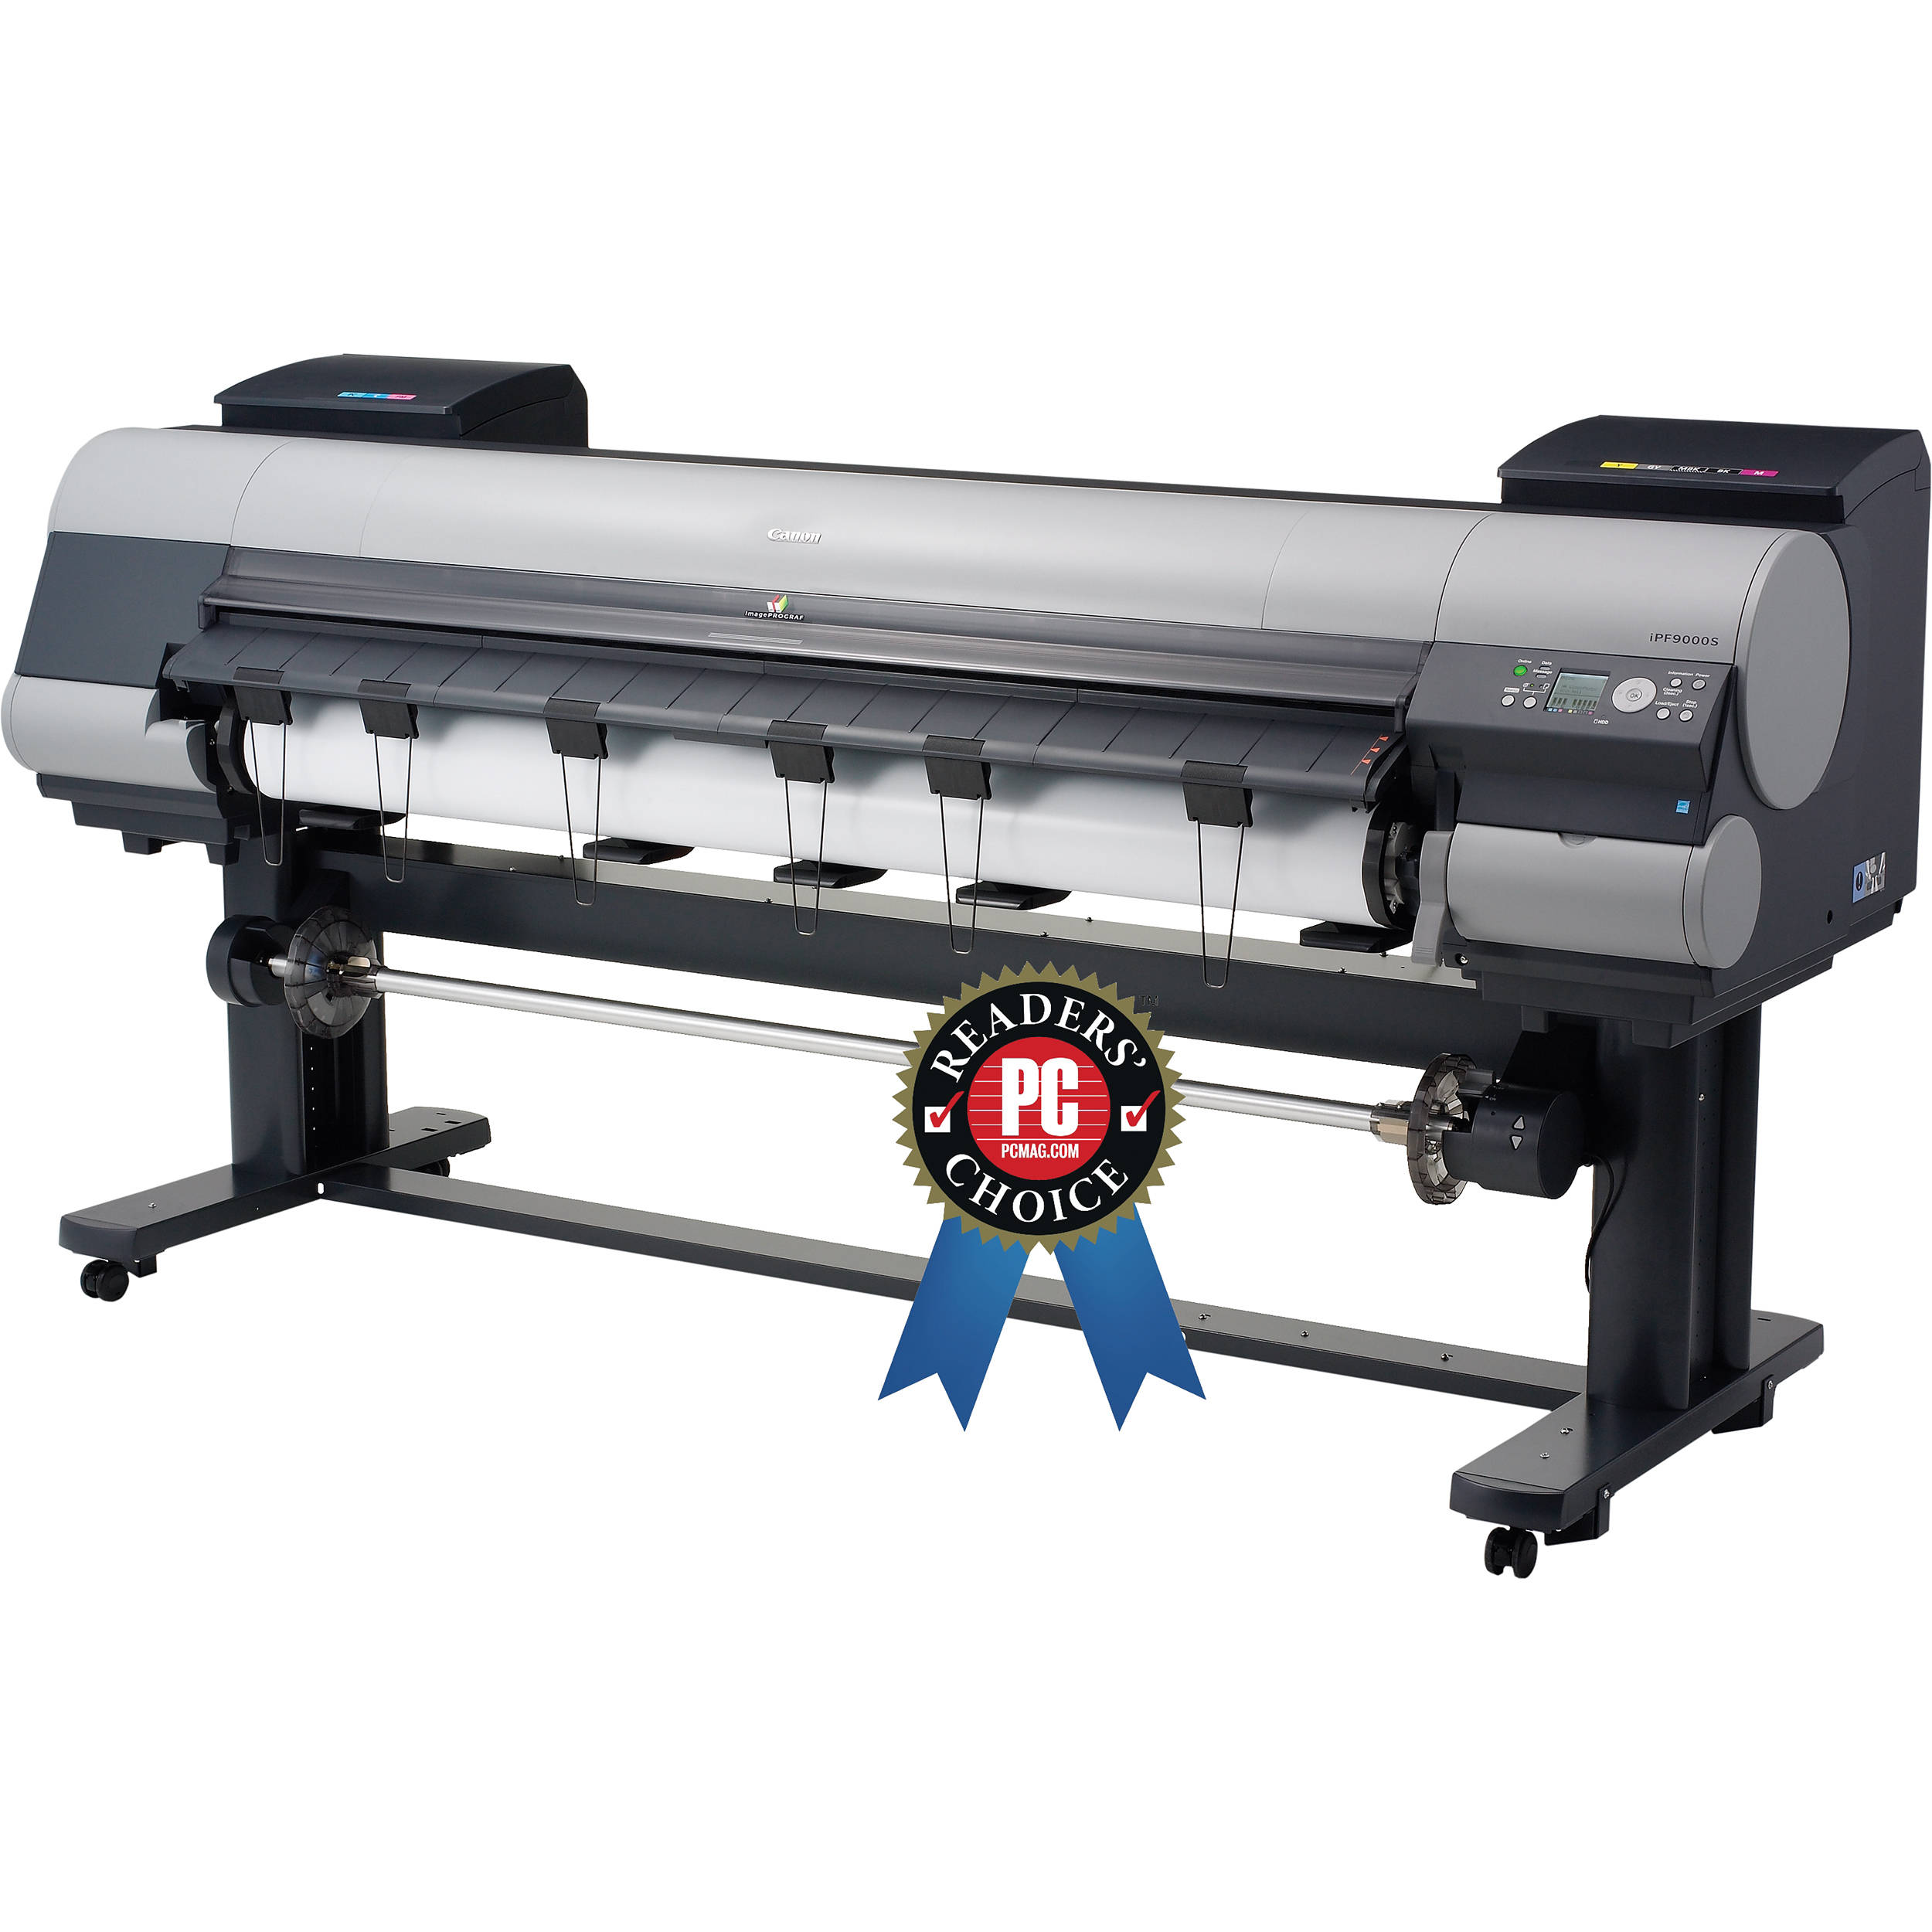 CANON IPF9000 PRINTER DRIVERS FOR MAC DOWNLOAD